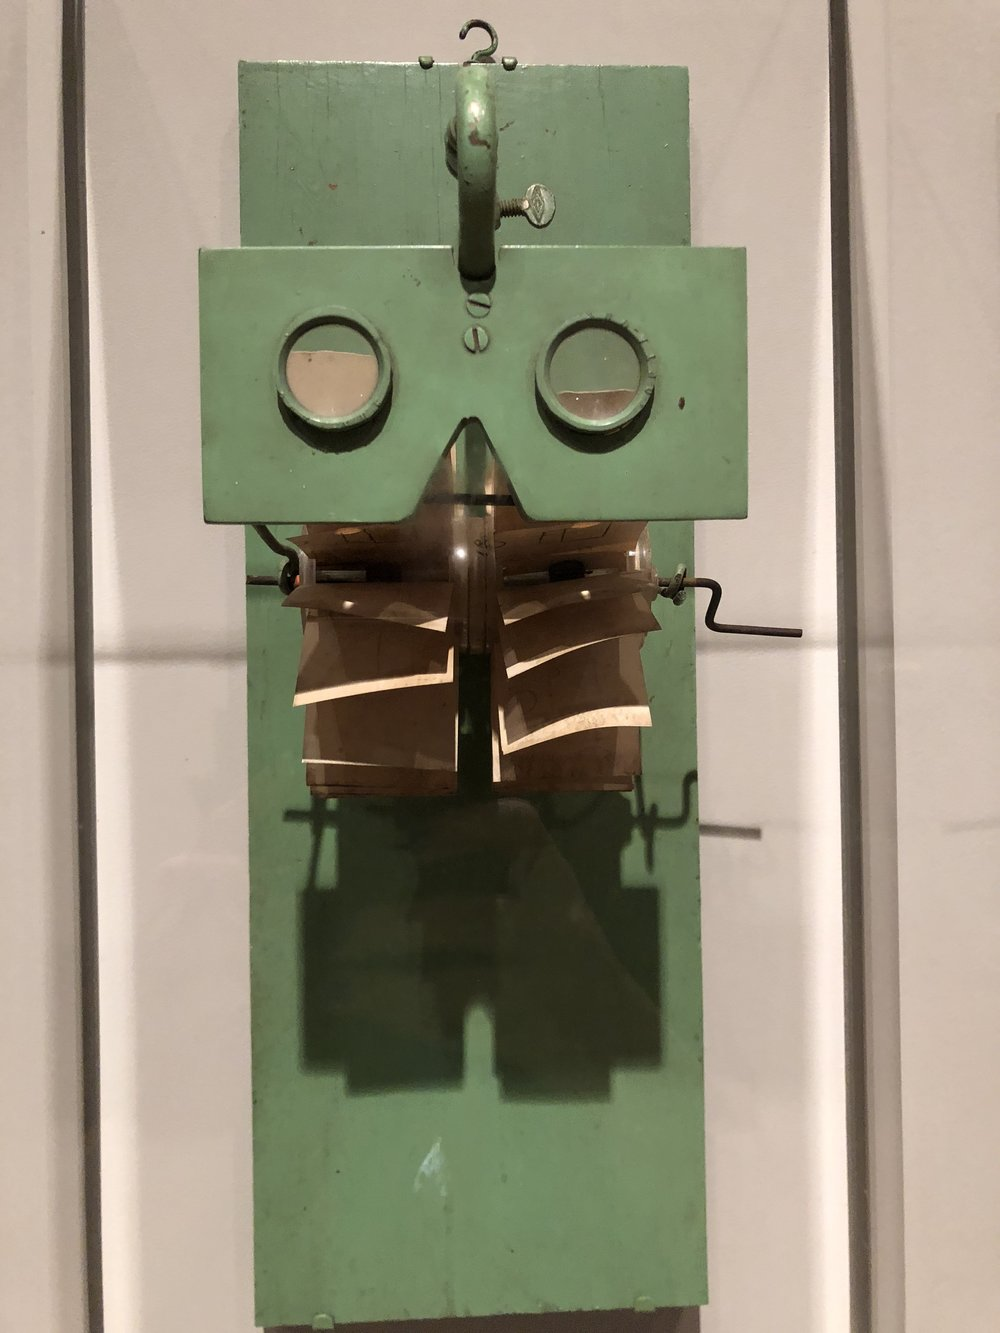 Robert Breer,  3D Mutoscope  1978